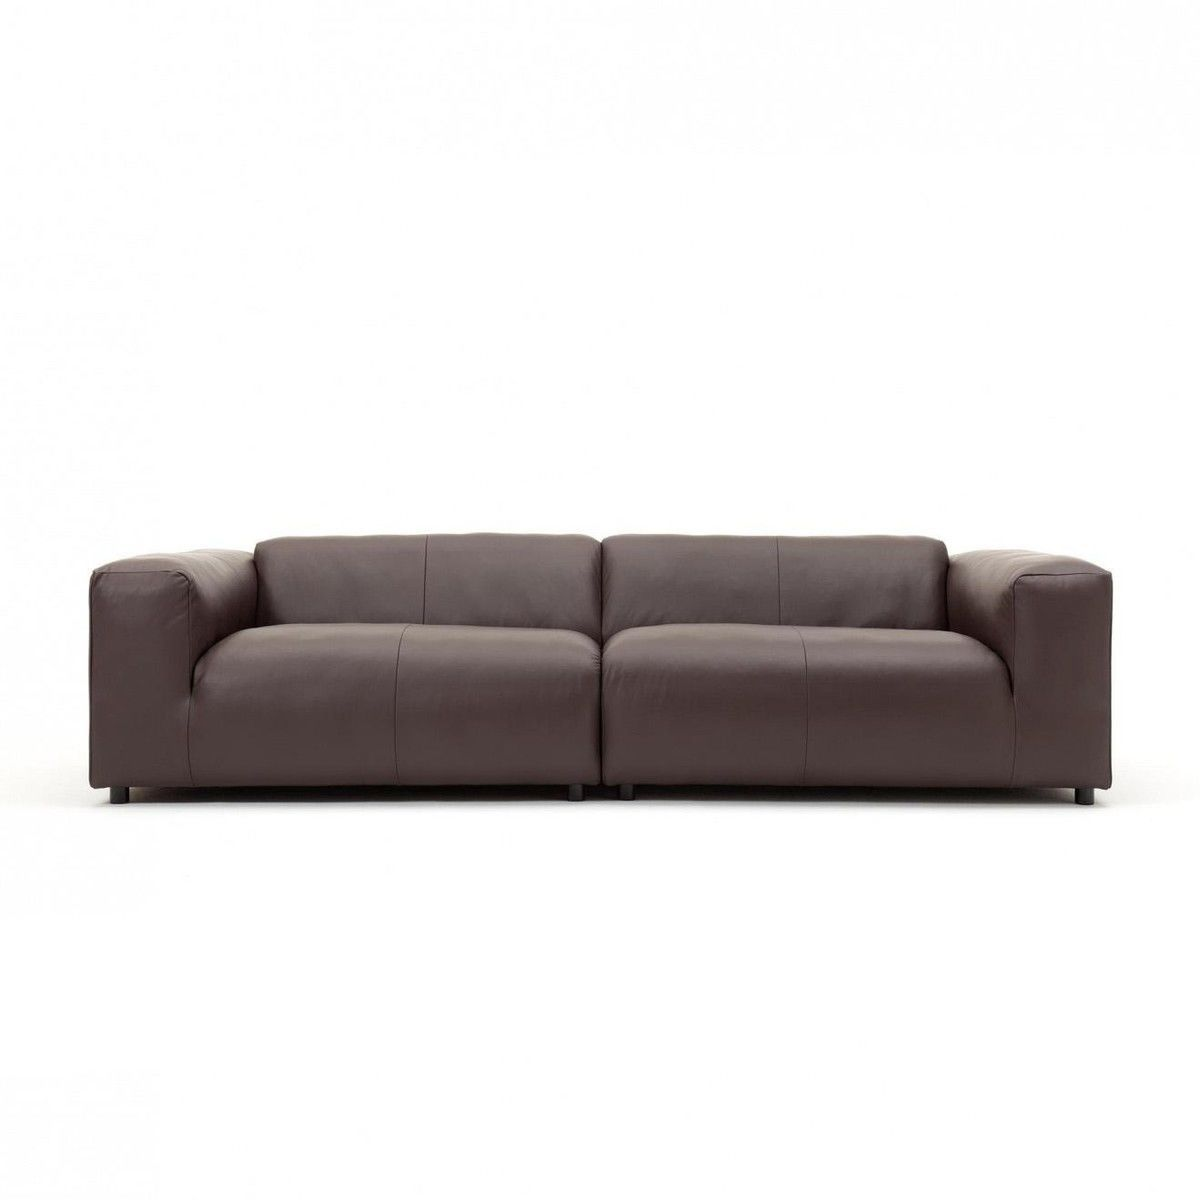 Ledersofa schwarz rolf benz  freistil 187 3-Seater Leather Sofa | freistil Rolf Benz ...